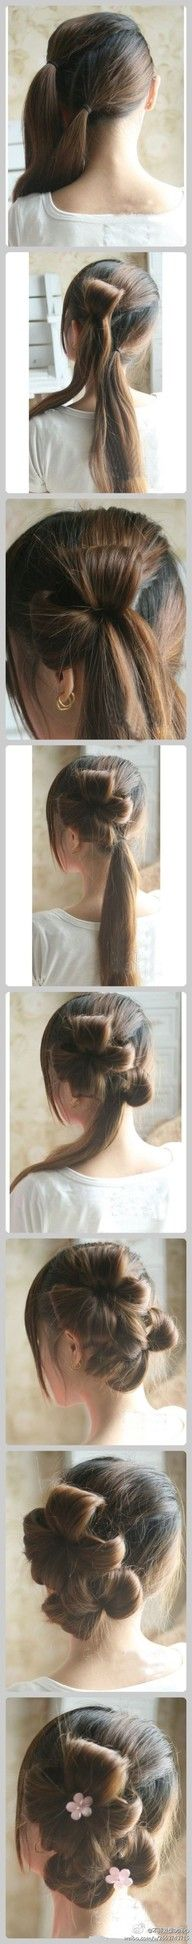 wish my hair was long enough for this!